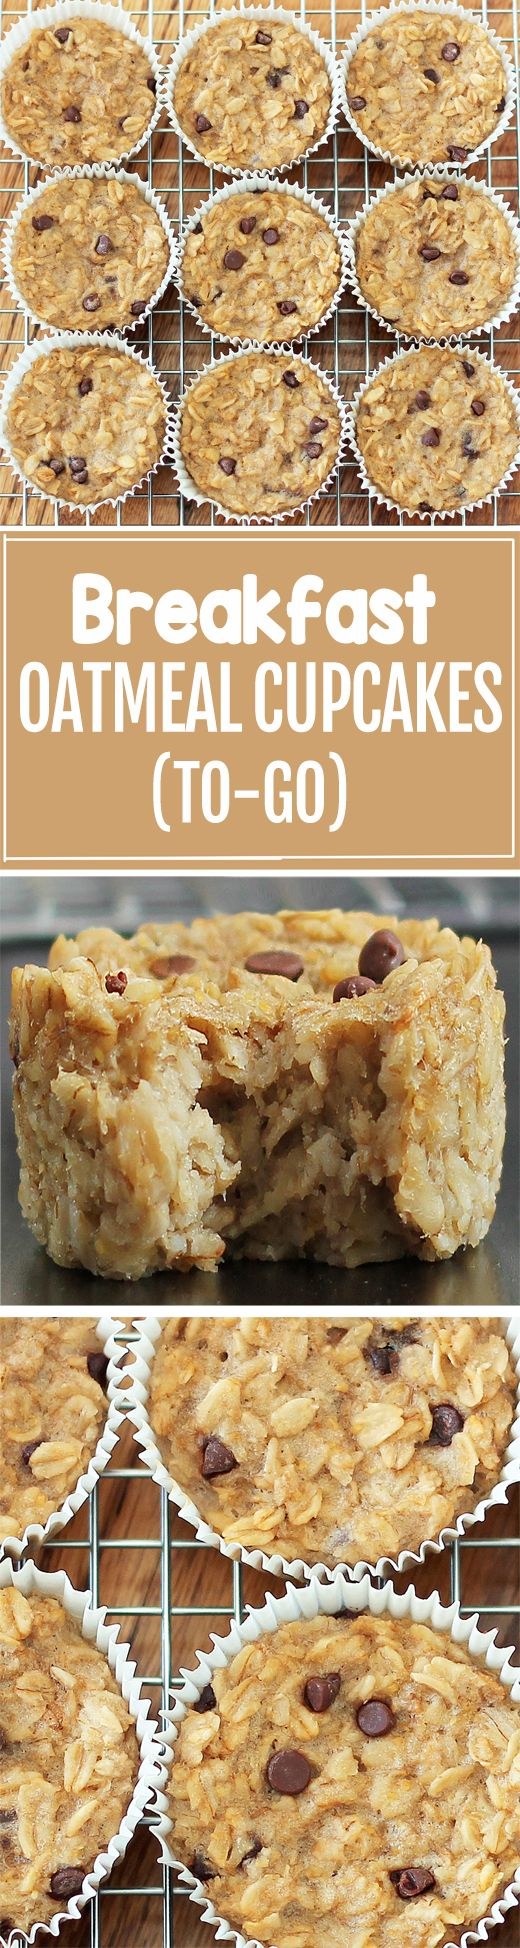 This recipe is amazing! You can bake the oatmeal cupcakes the night before and get a healthy breakfast for the month! http://eatdojo.com/healthy-breakfast-tips-easy-fat-burning/ http://eatdojo.com/healthy-breakfast-tips-easy-fat-burning/